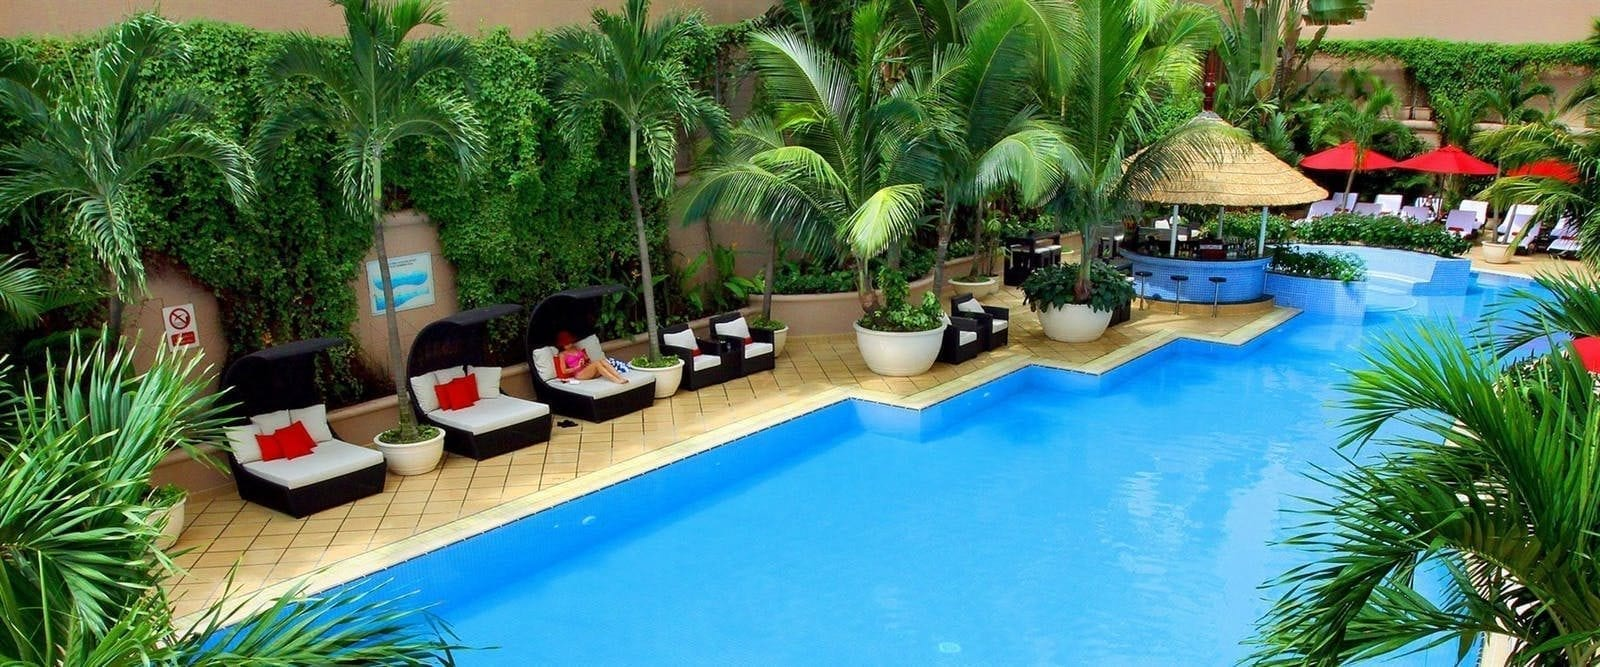 Caravelle hotel Pool